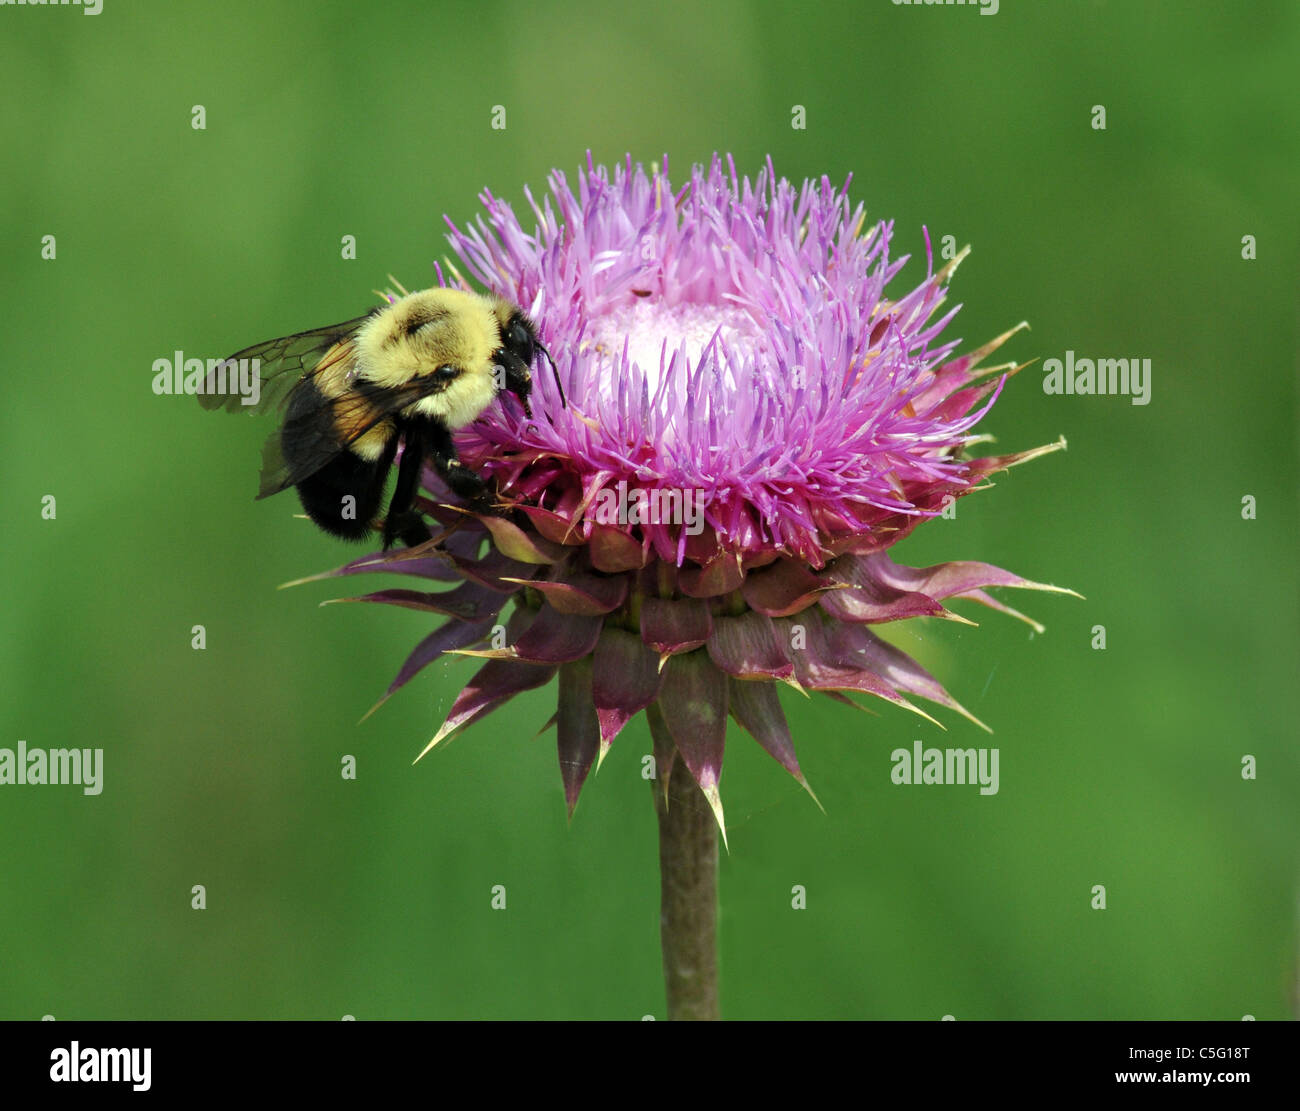 The Thistle is considered a weed but this shows it's flowering beauty and usefulness. - Stock Image